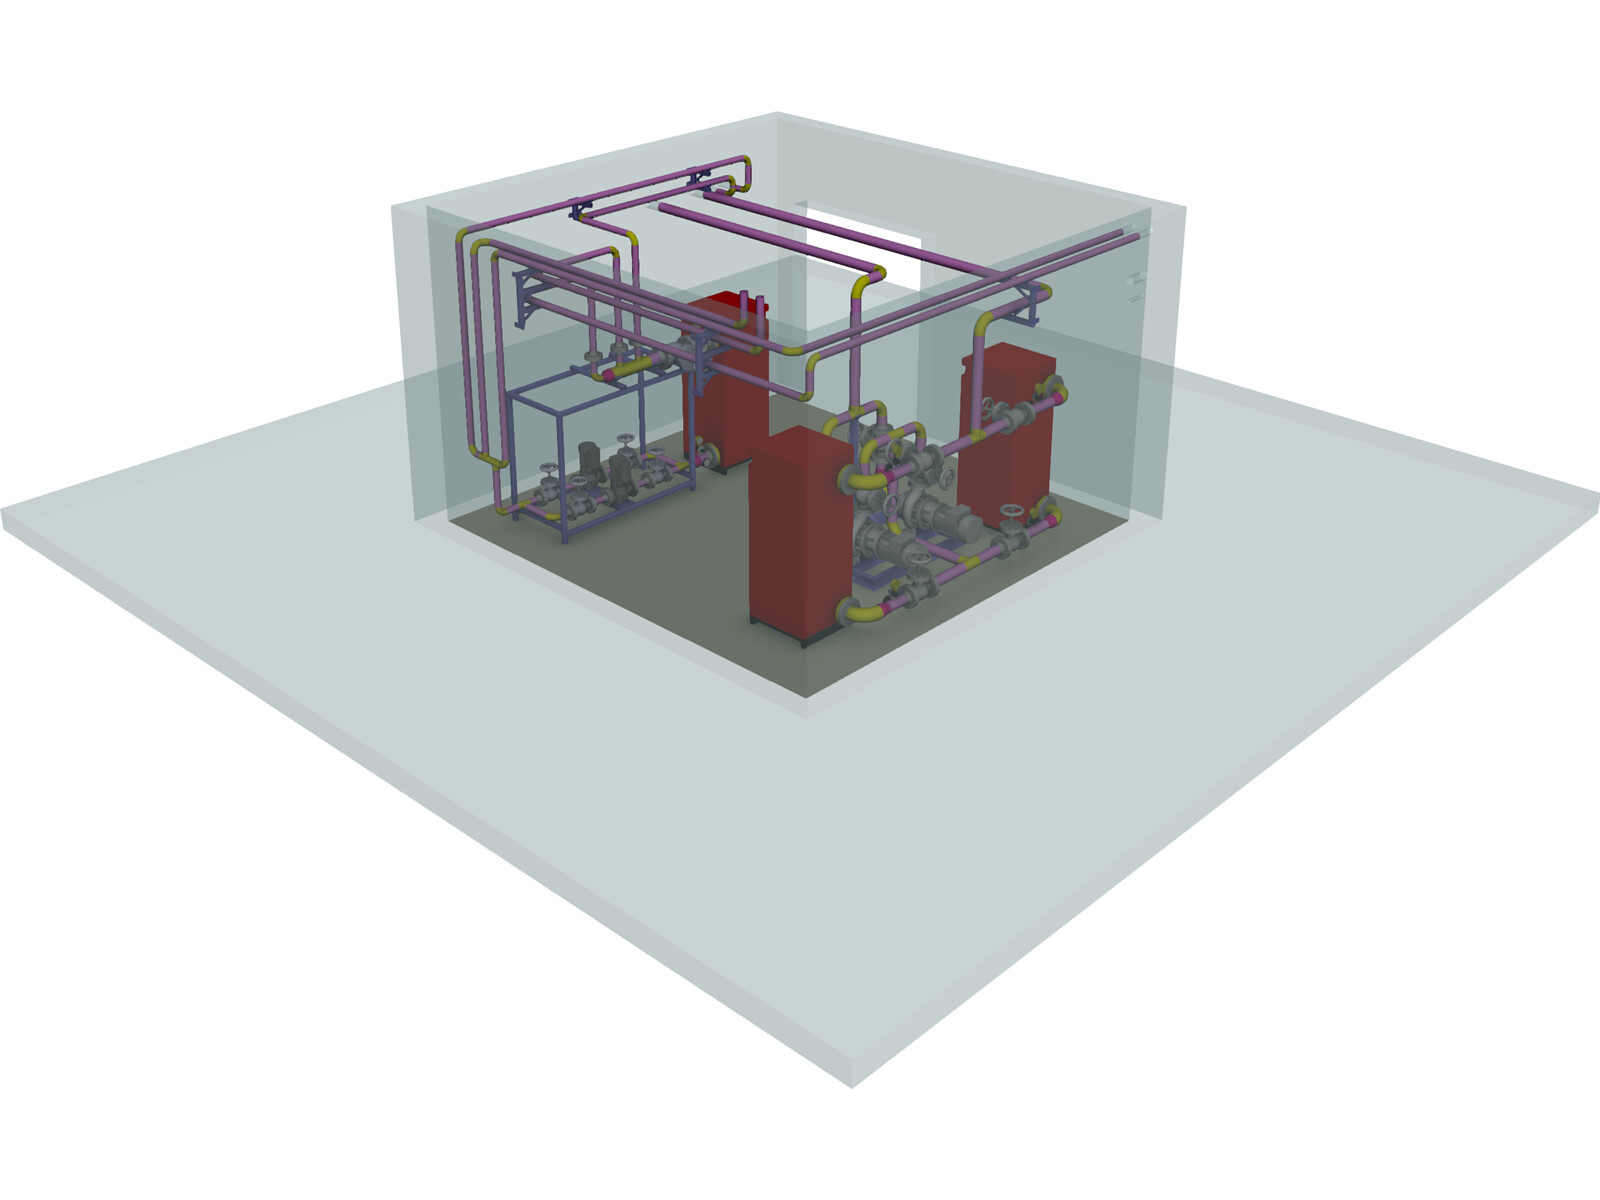 Electric Boiler Room 3d Cad Model Download 3d Cad Browser